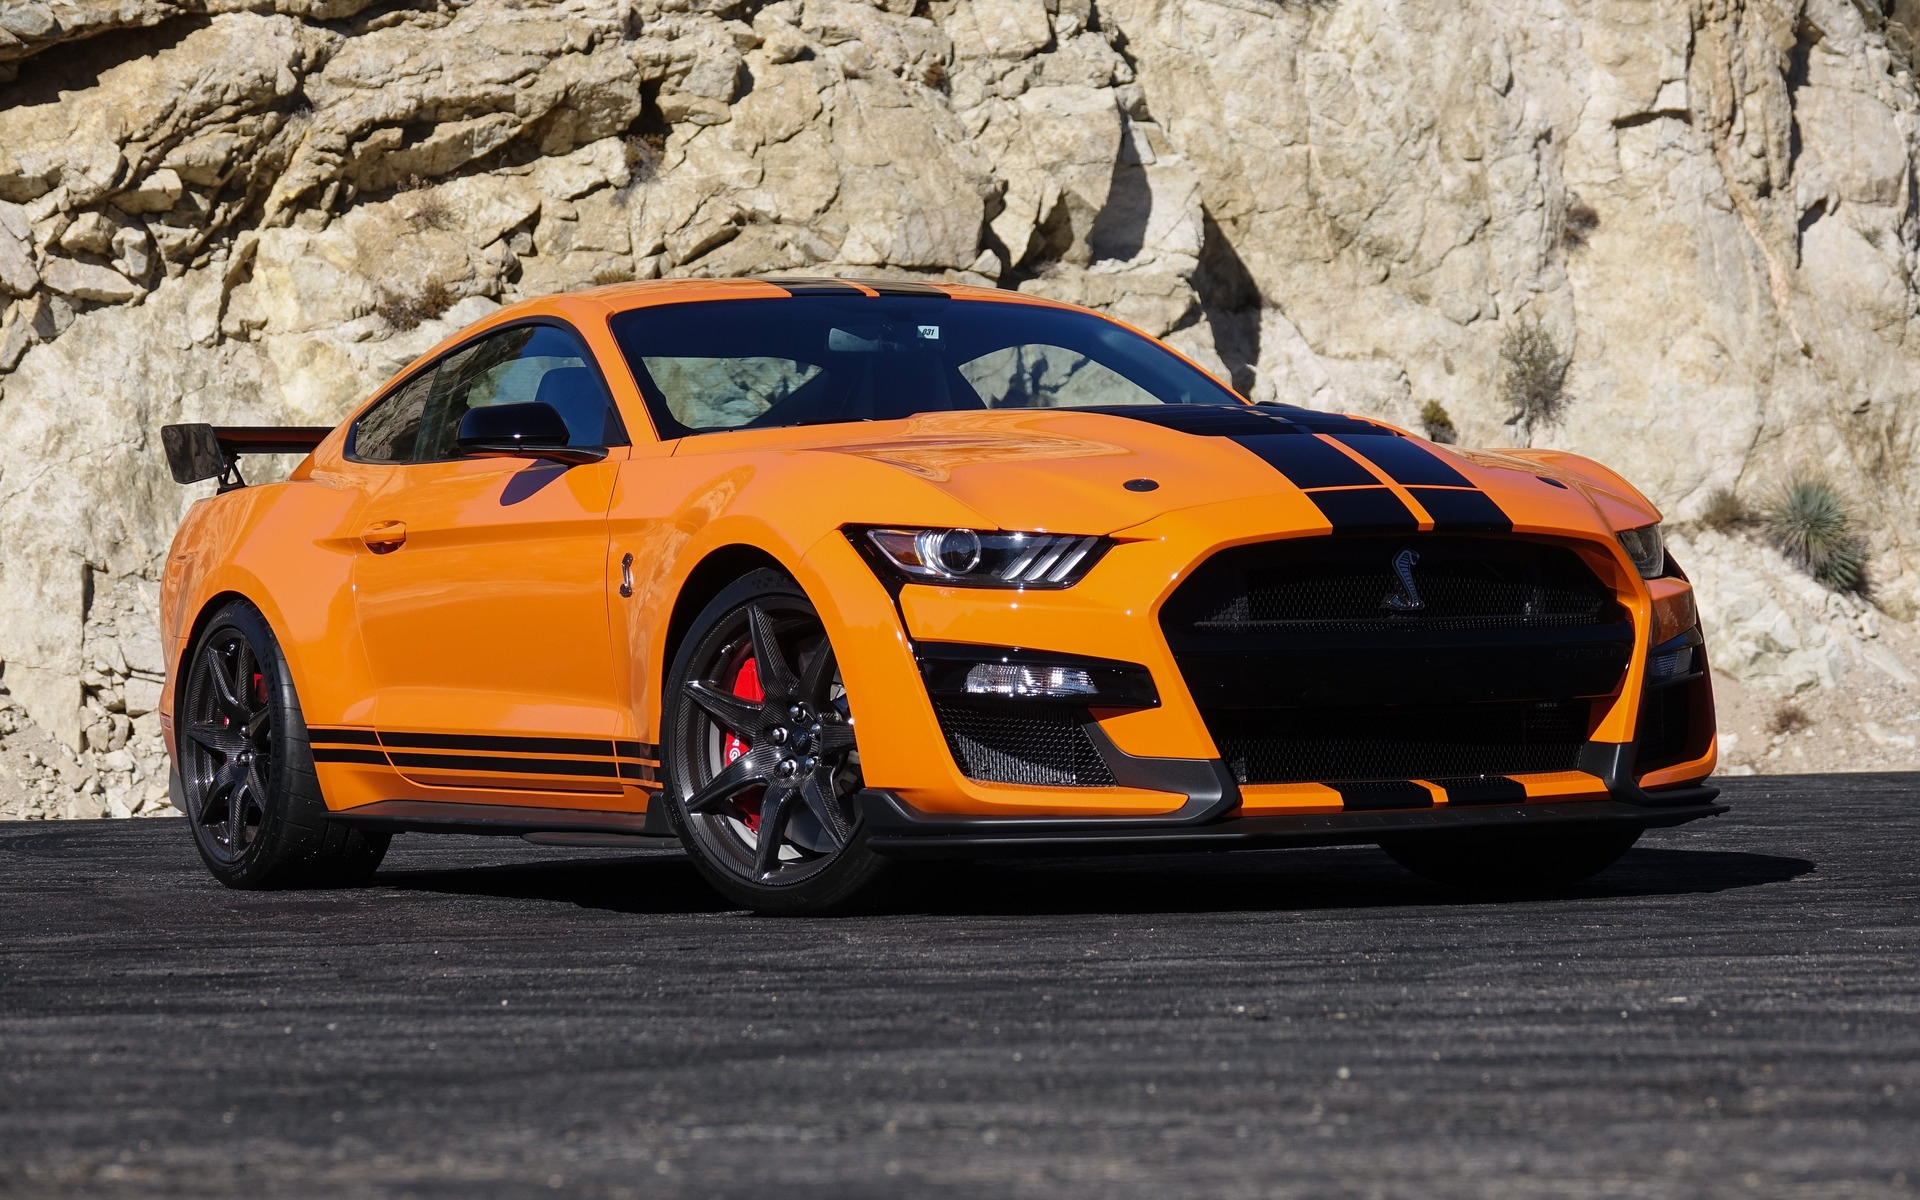 Ford Mustang Shelby Gt500 2020 : Démentielle Et Docile